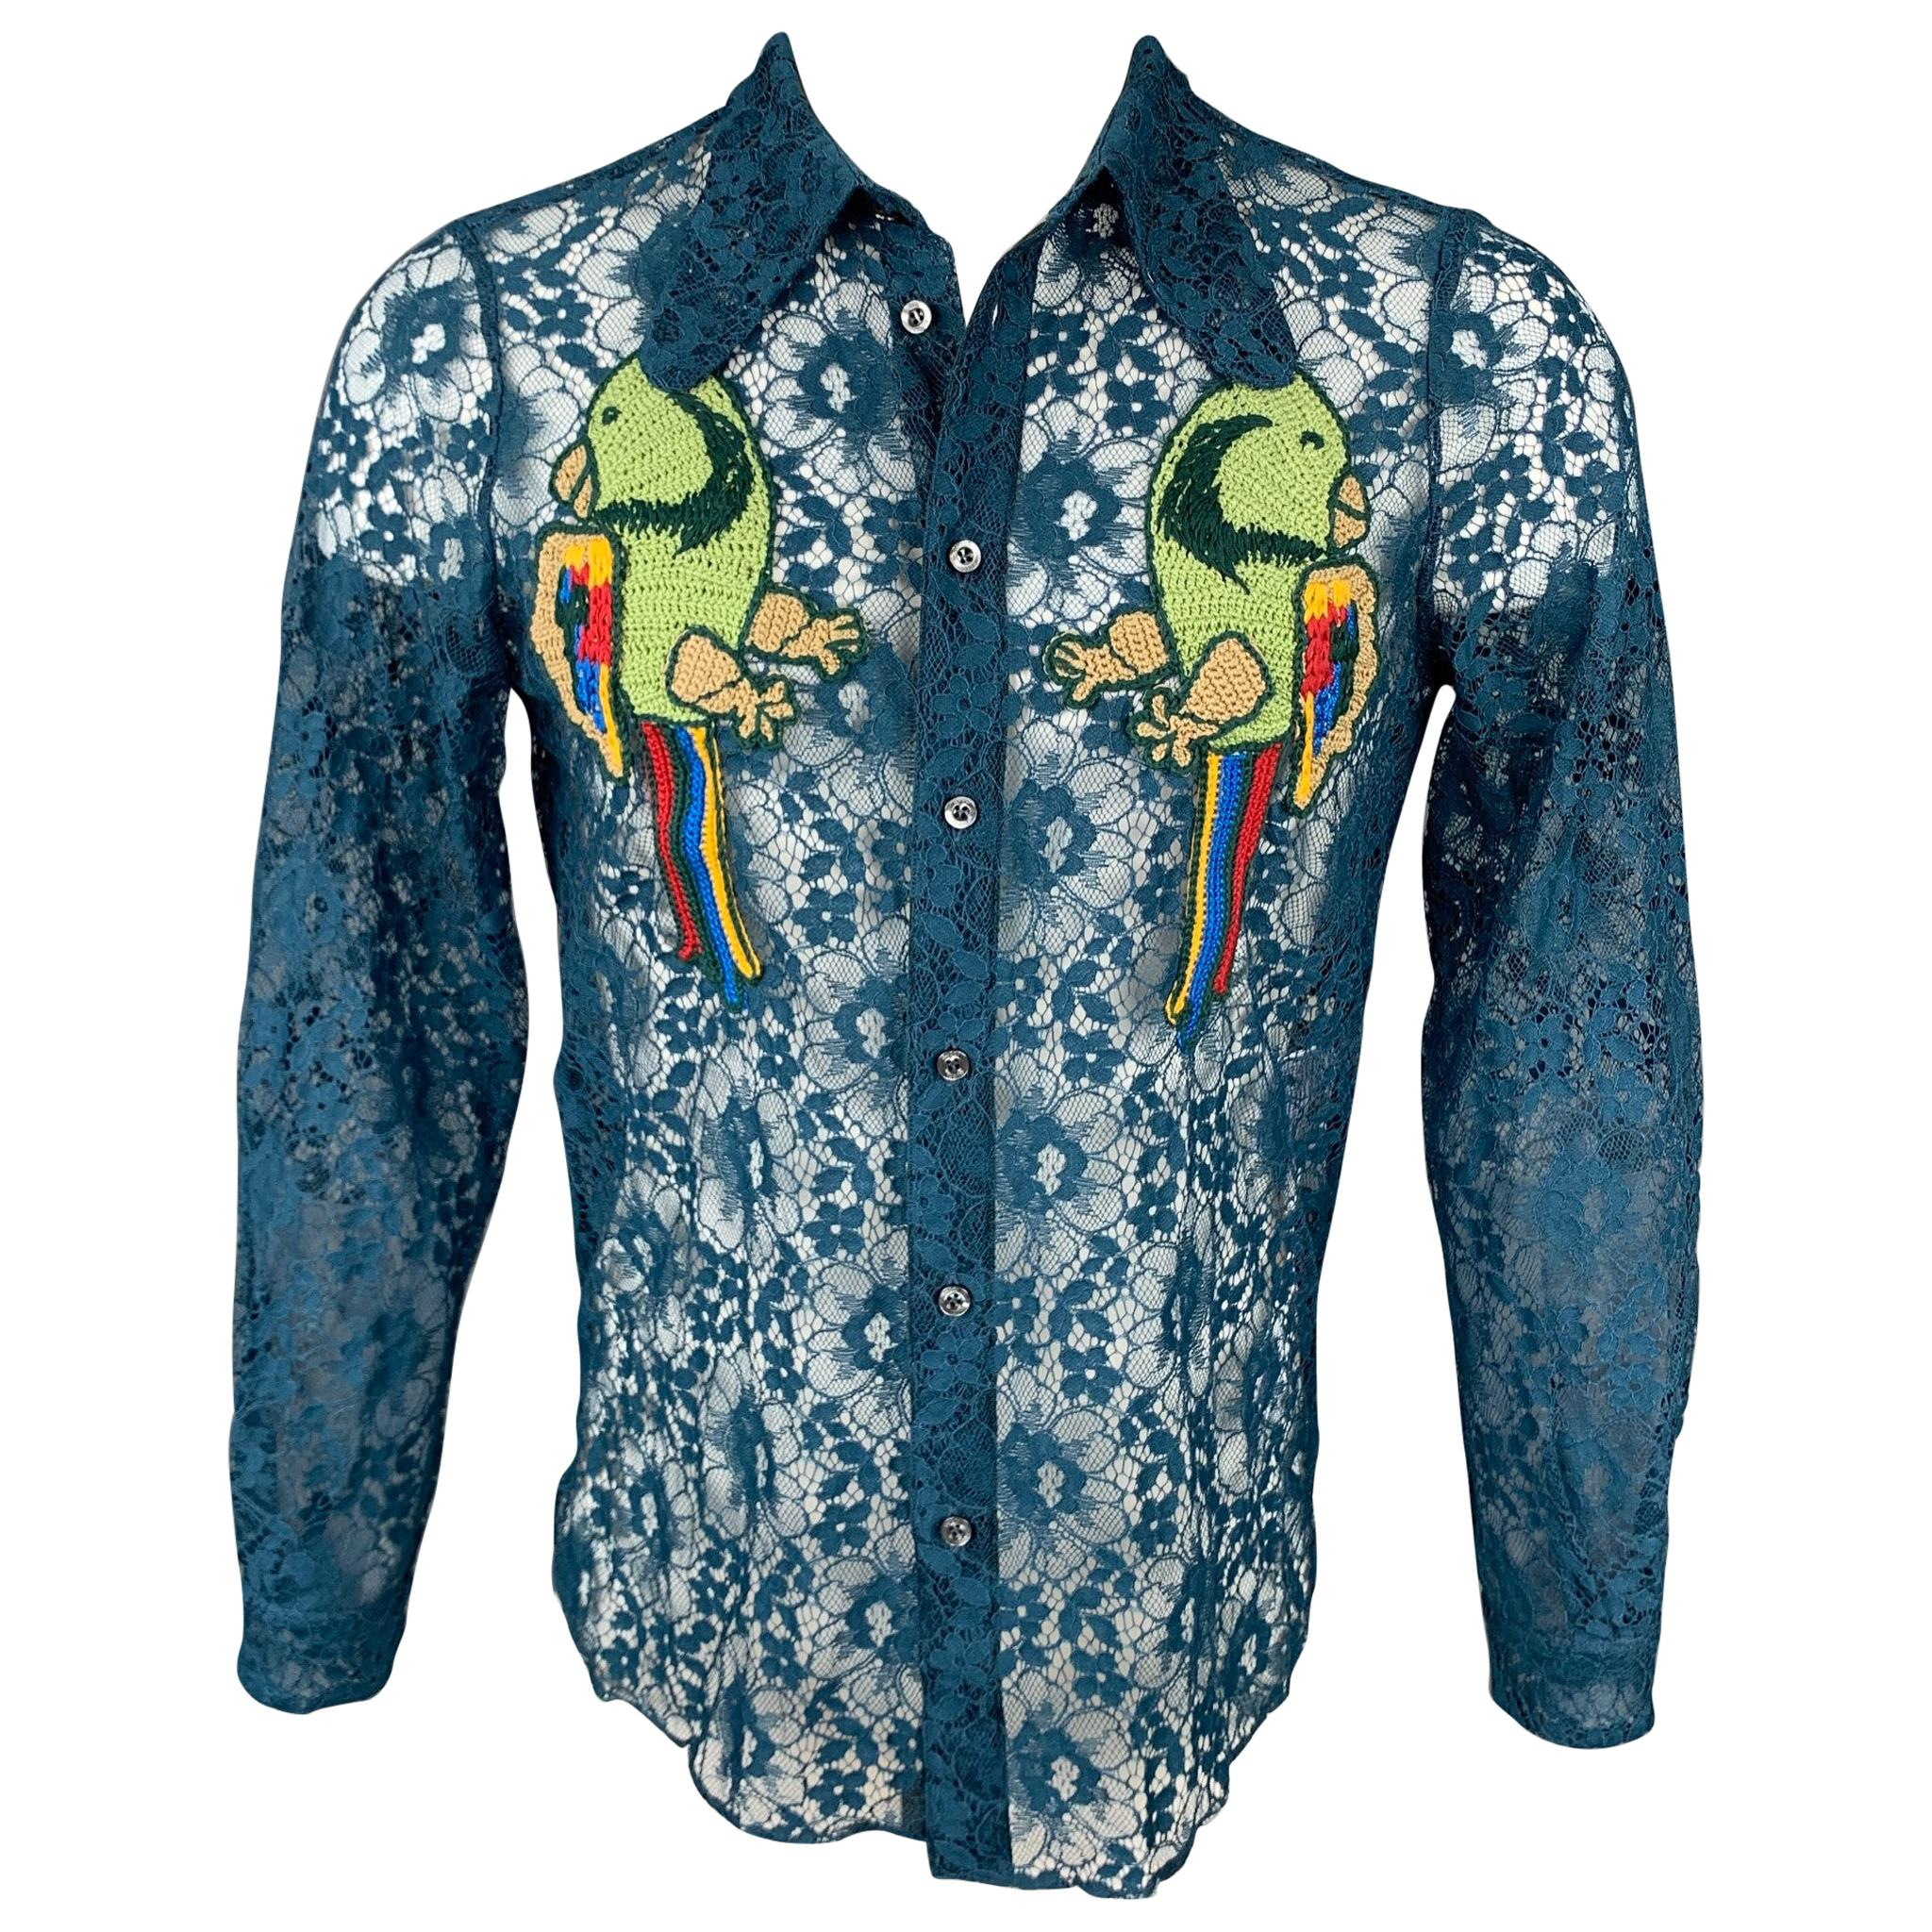 GUCCI S/S 16 Size S Teal Sheer Lace Embroidery Polyamide Blend Long Sleeve Shirt